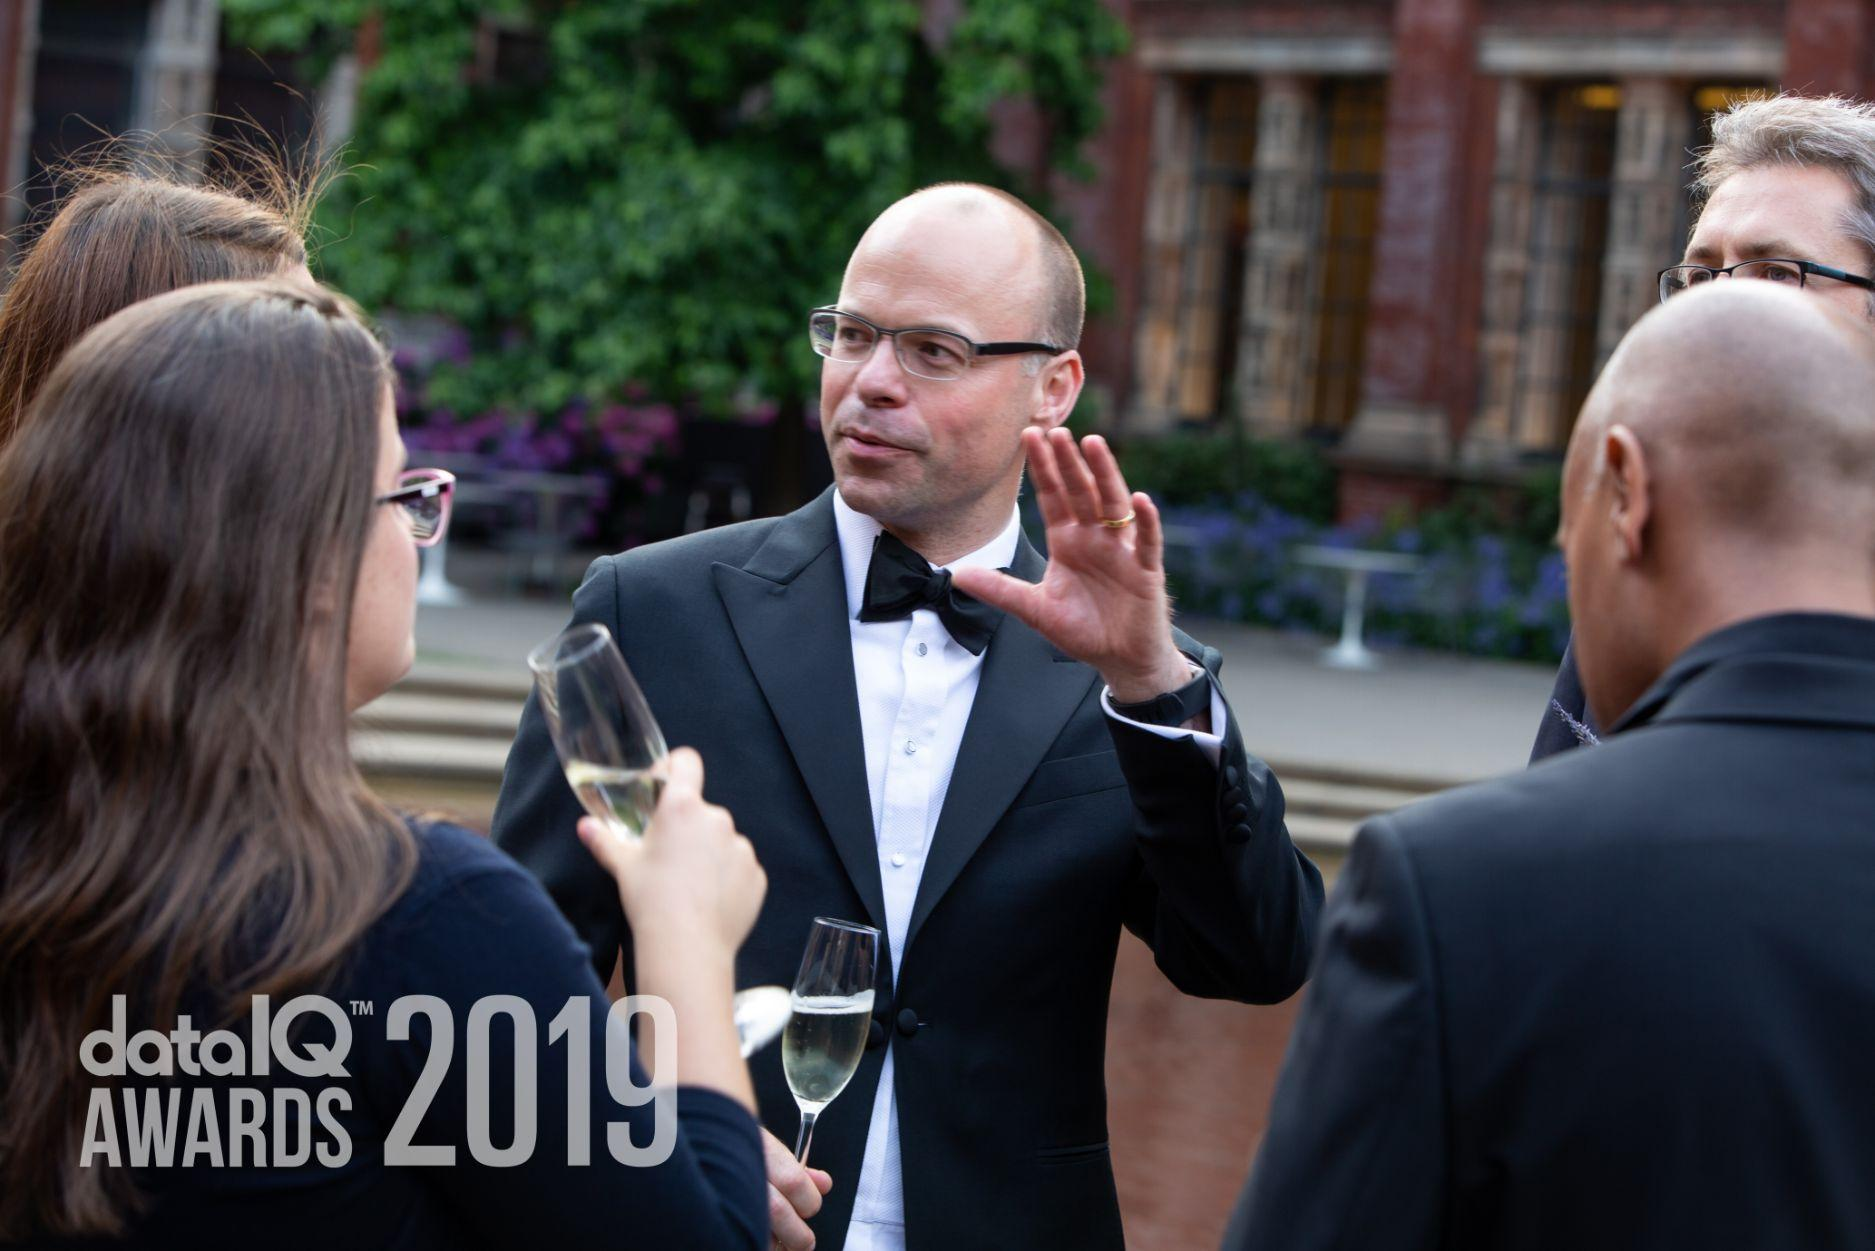 Awards 2019 Image 102